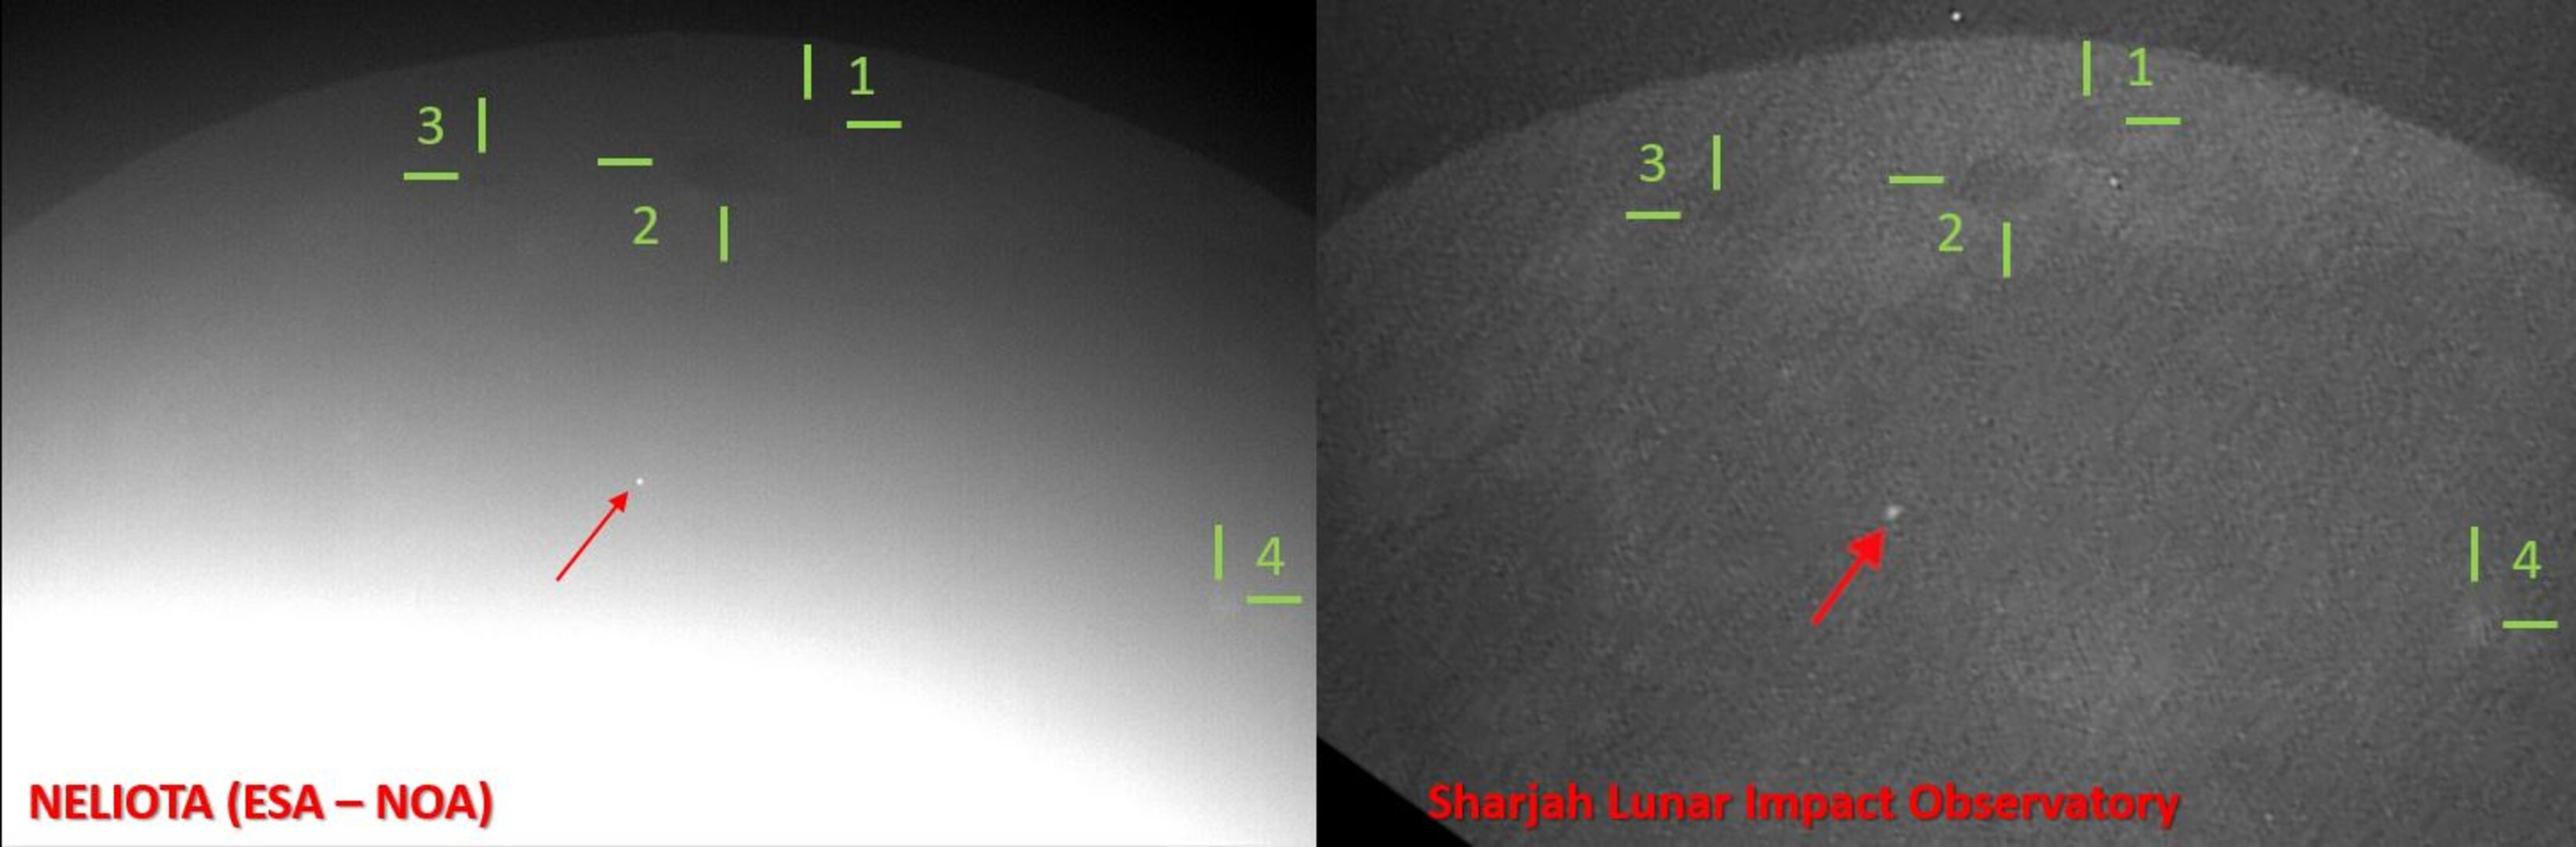 First joint-detection of lunar flash